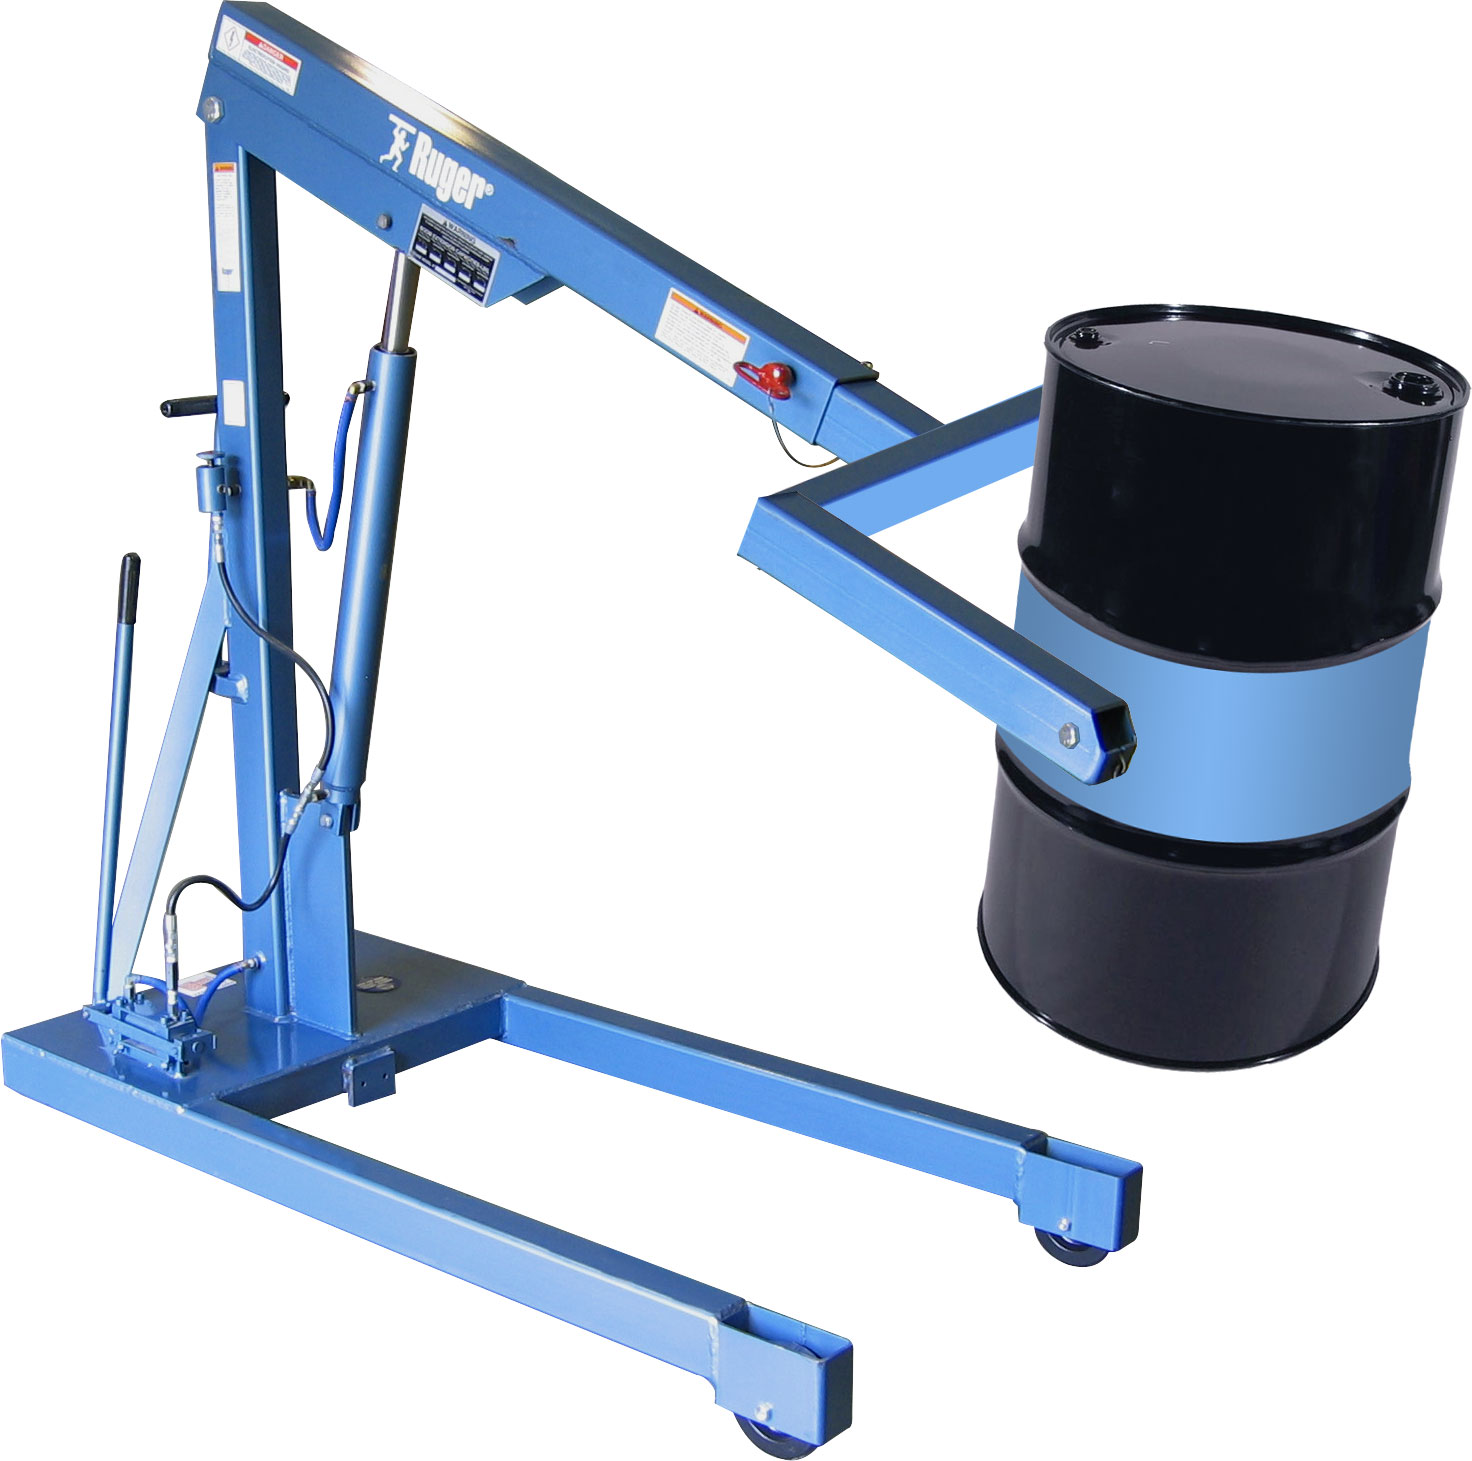 Ruger Portable Drum Handling Crane, 55 Gallon